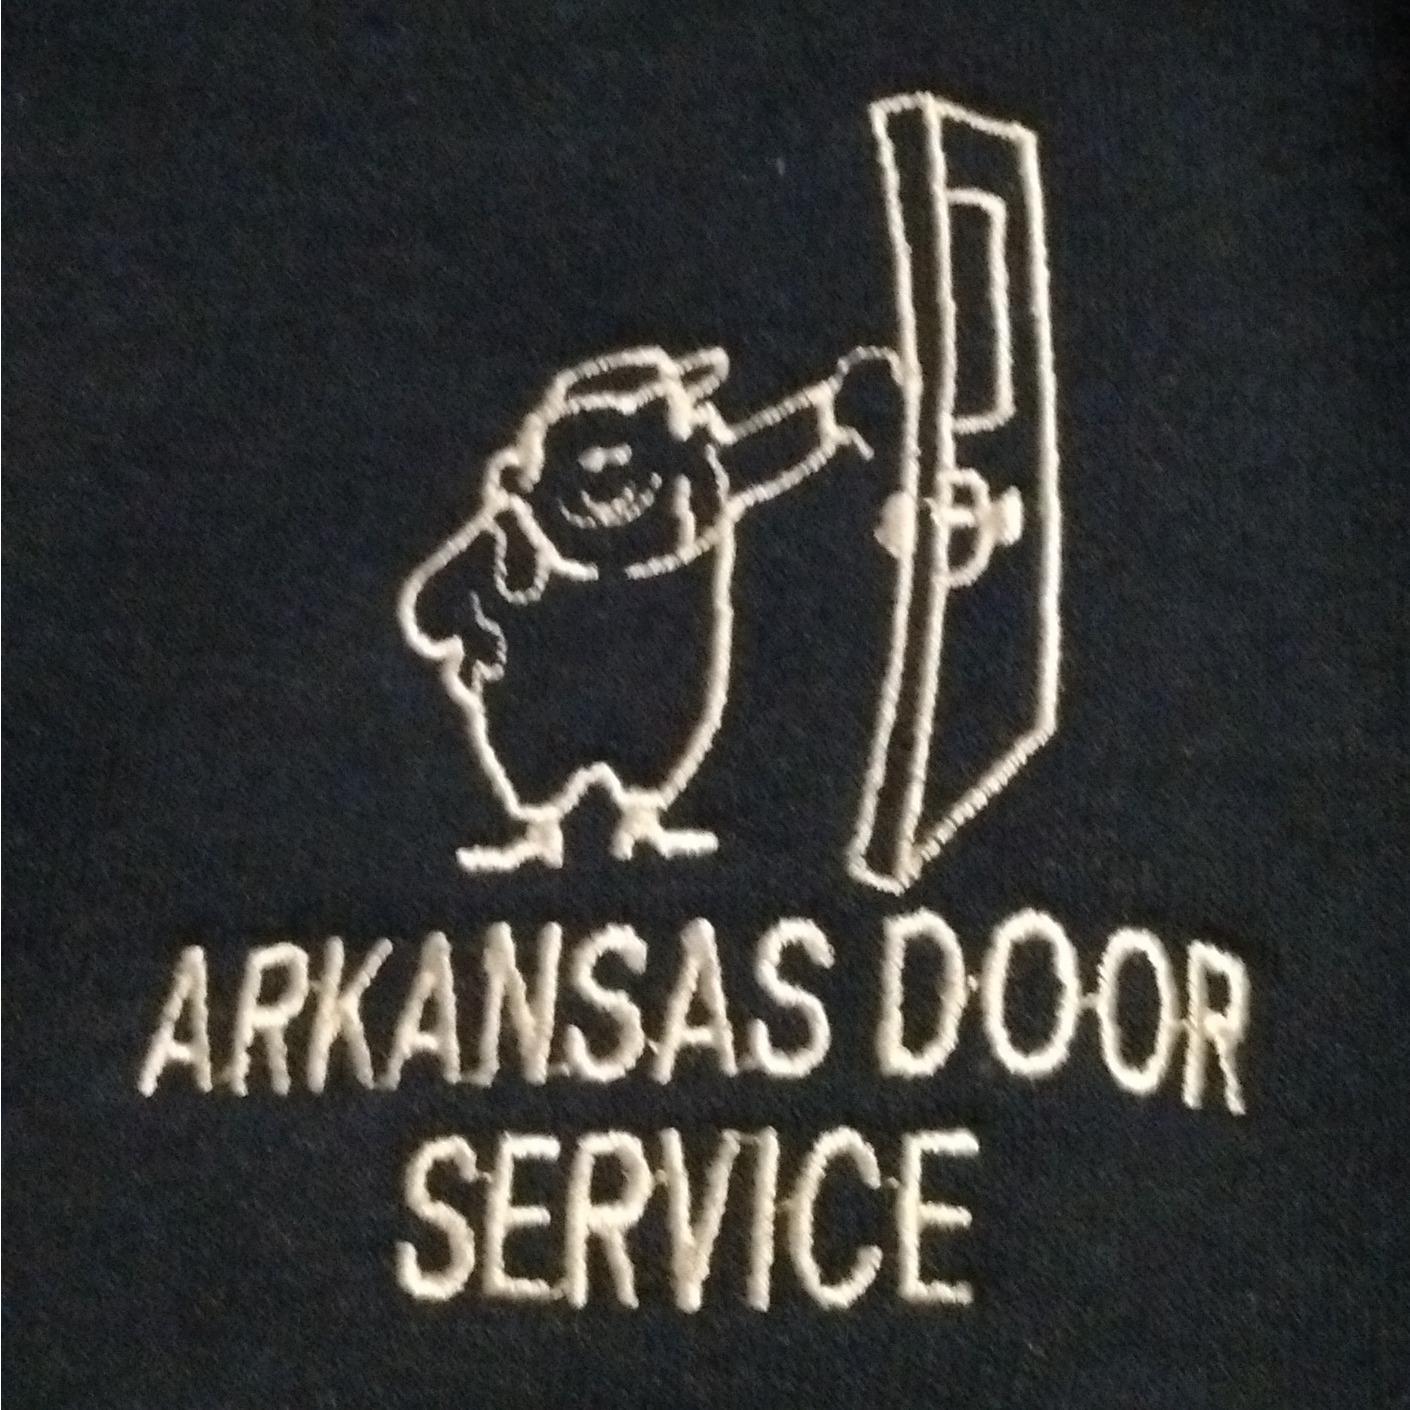 Arkansas Door Service